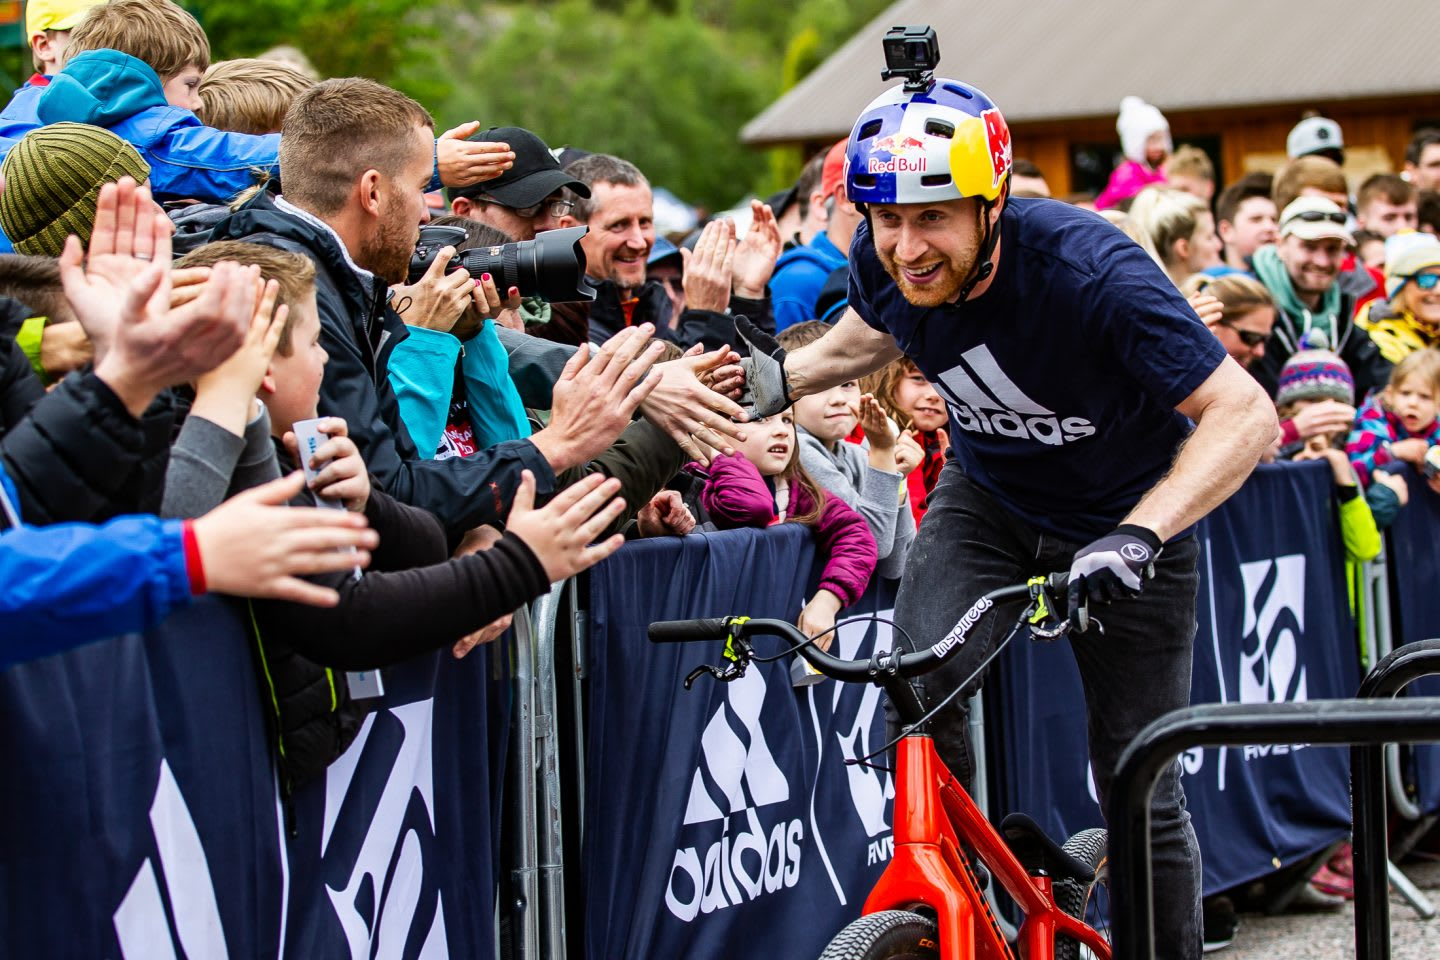 Mountainbike pro Danny MacAskill is giving his fans a high five while he passes them on his bike